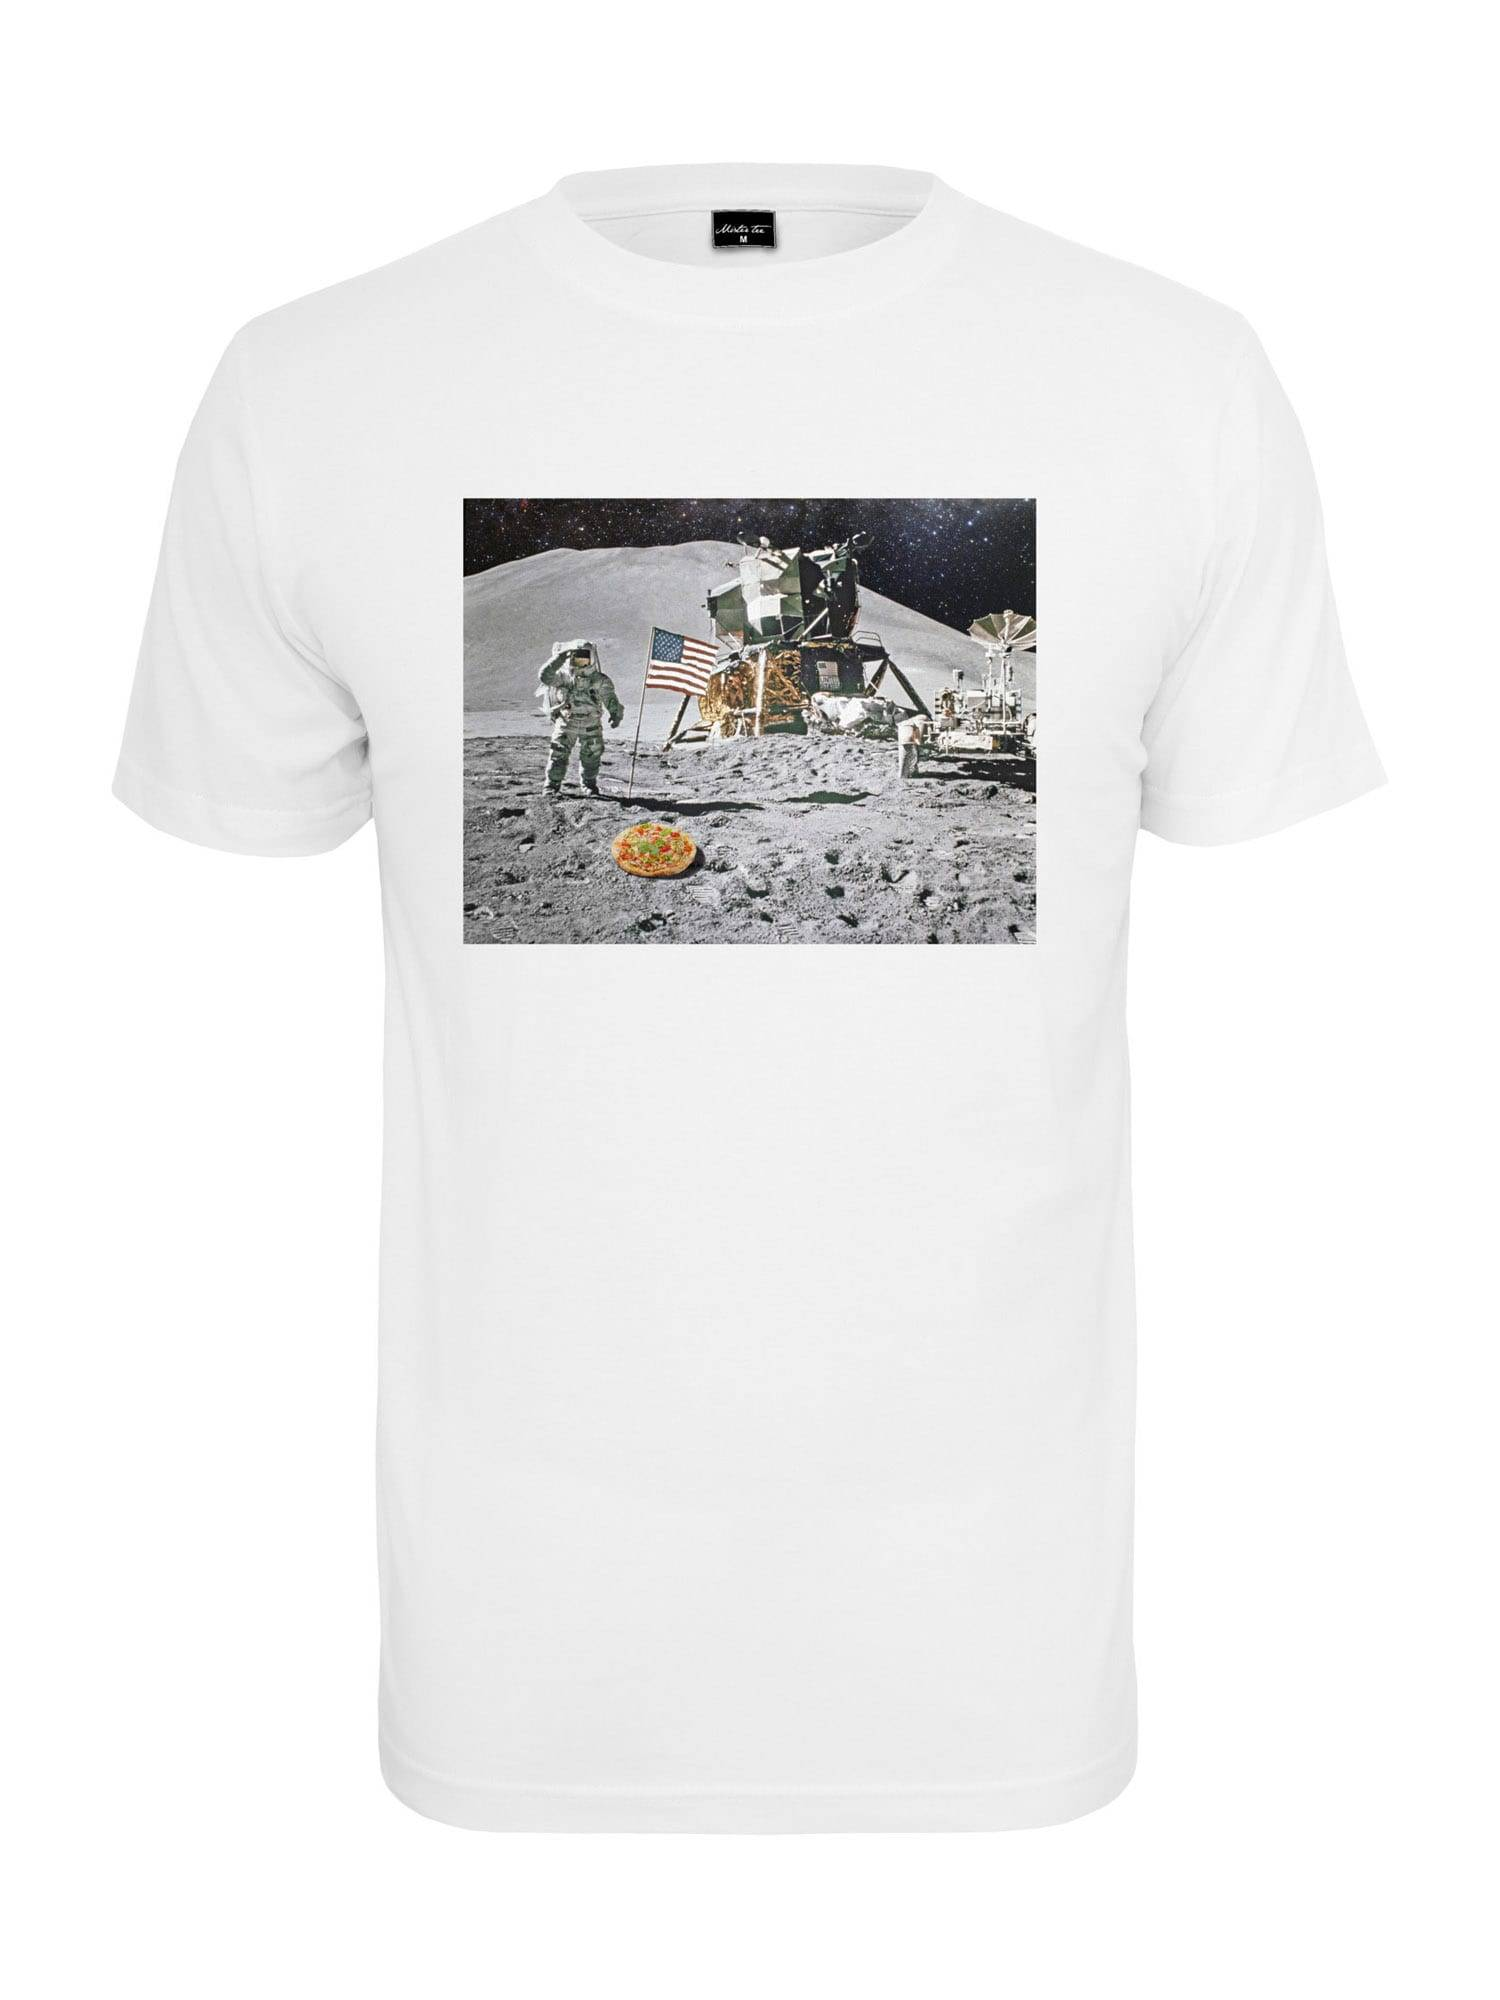 Tee T-Shirt 'Pizza Moon'  - Blanc - Taille: XXL - male